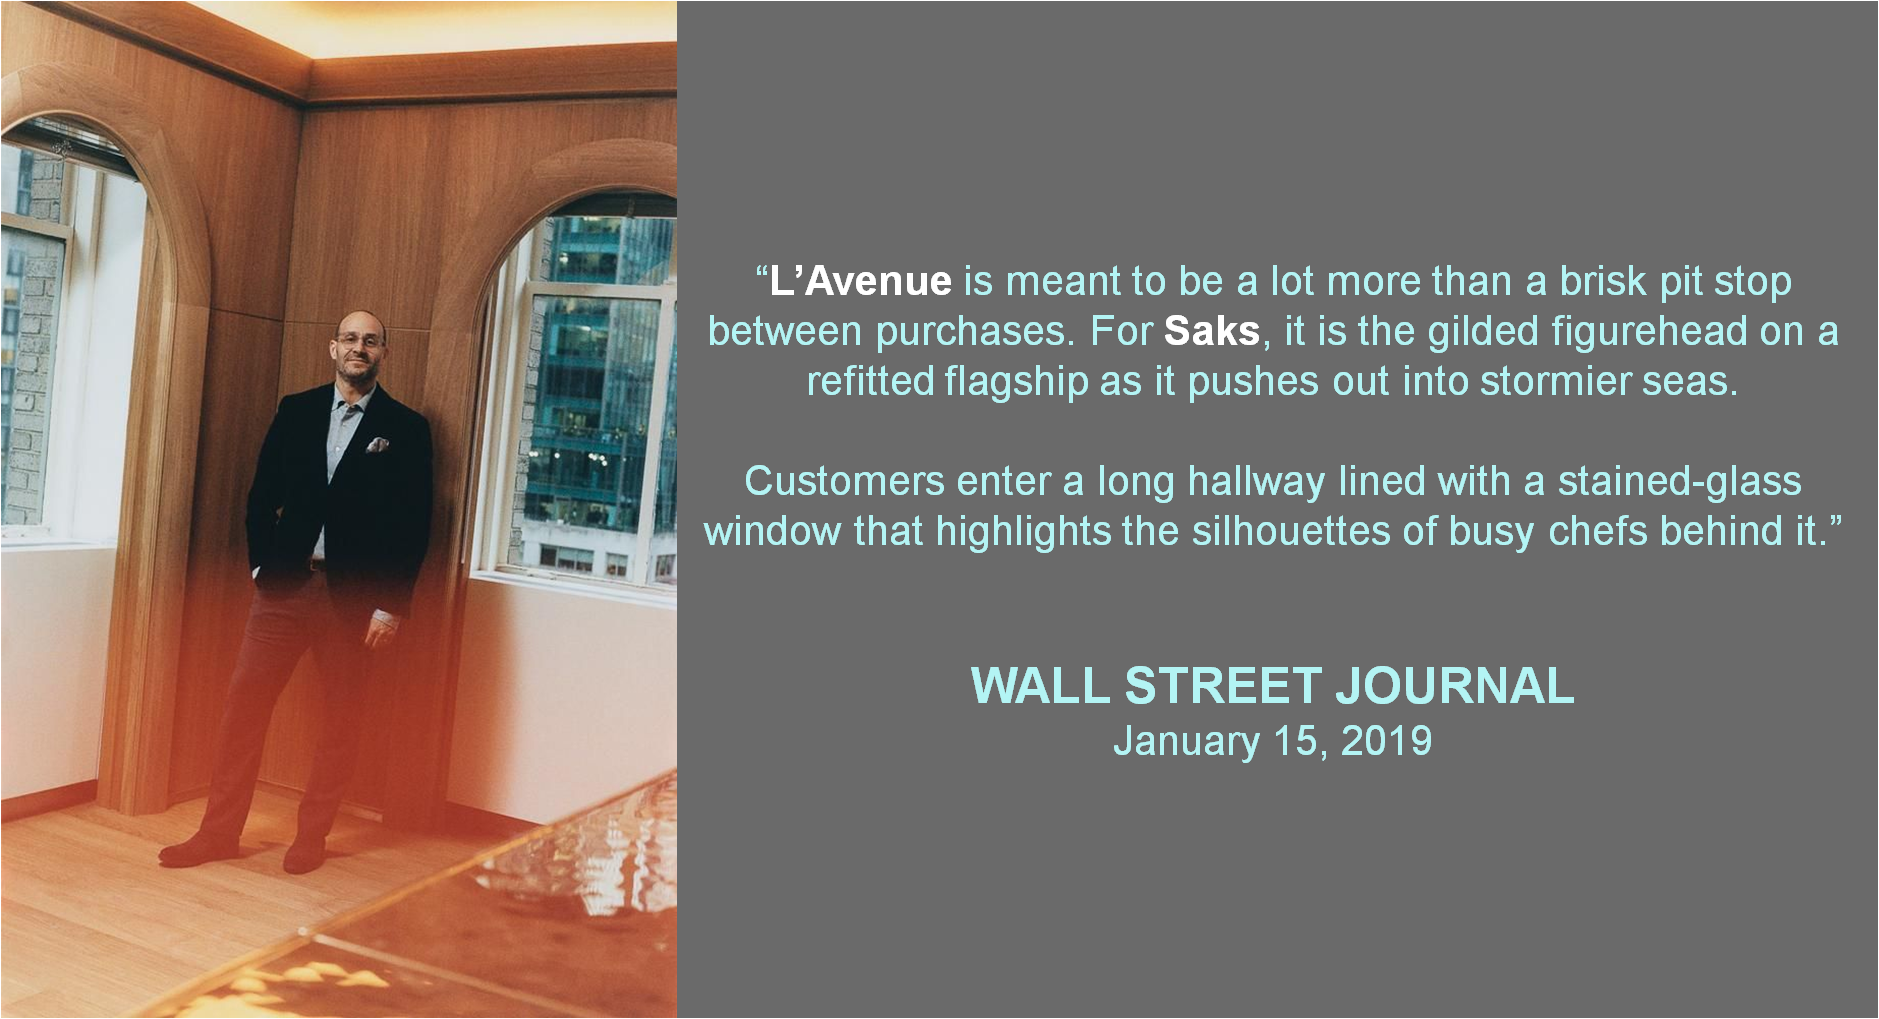 Wall Street Journal January 15 2019 L'Avenue.png